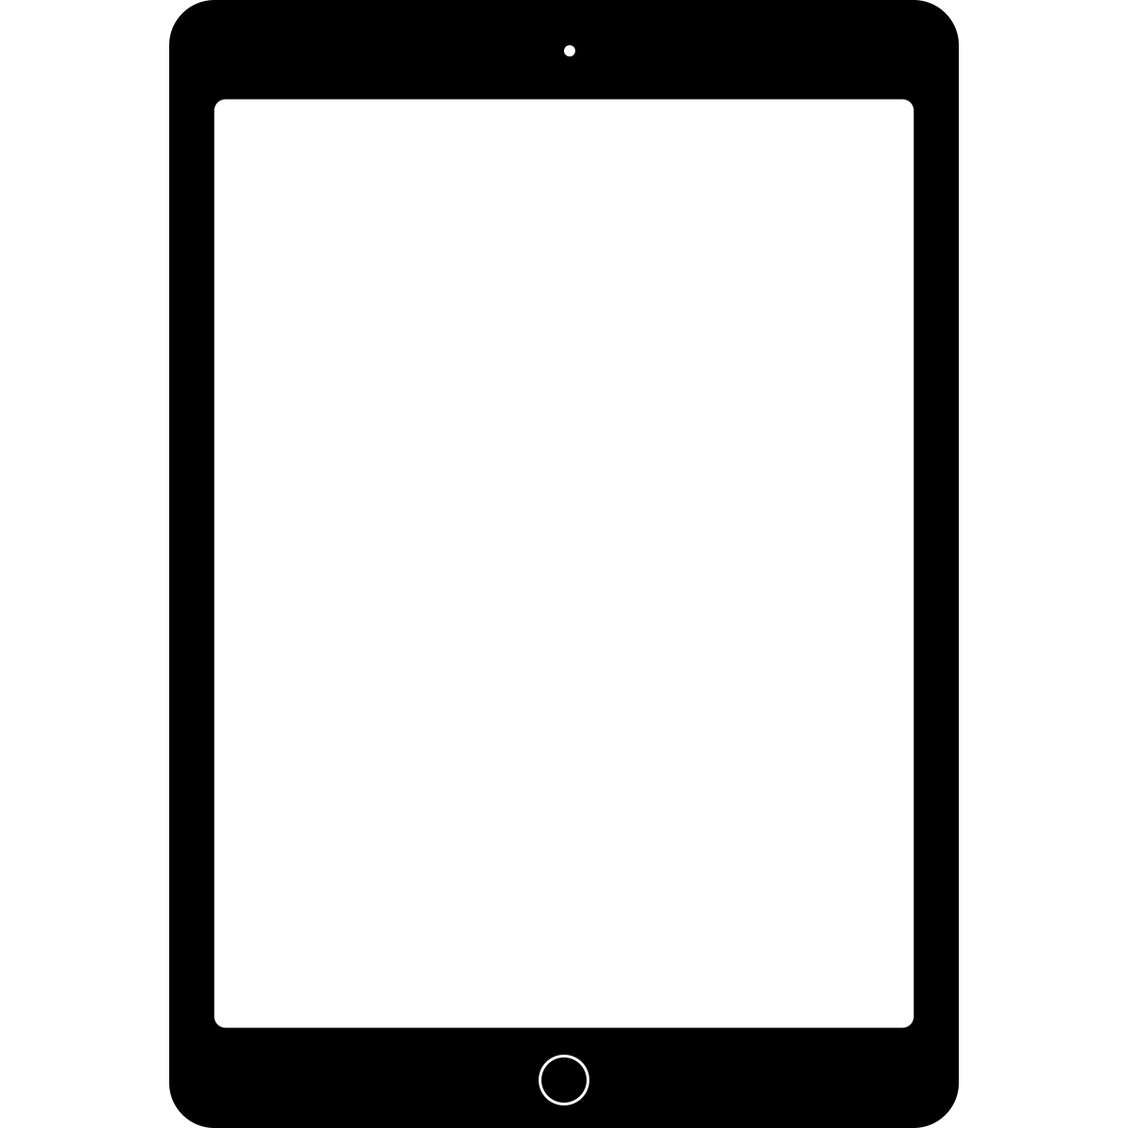 blank-tablet-png-7.png